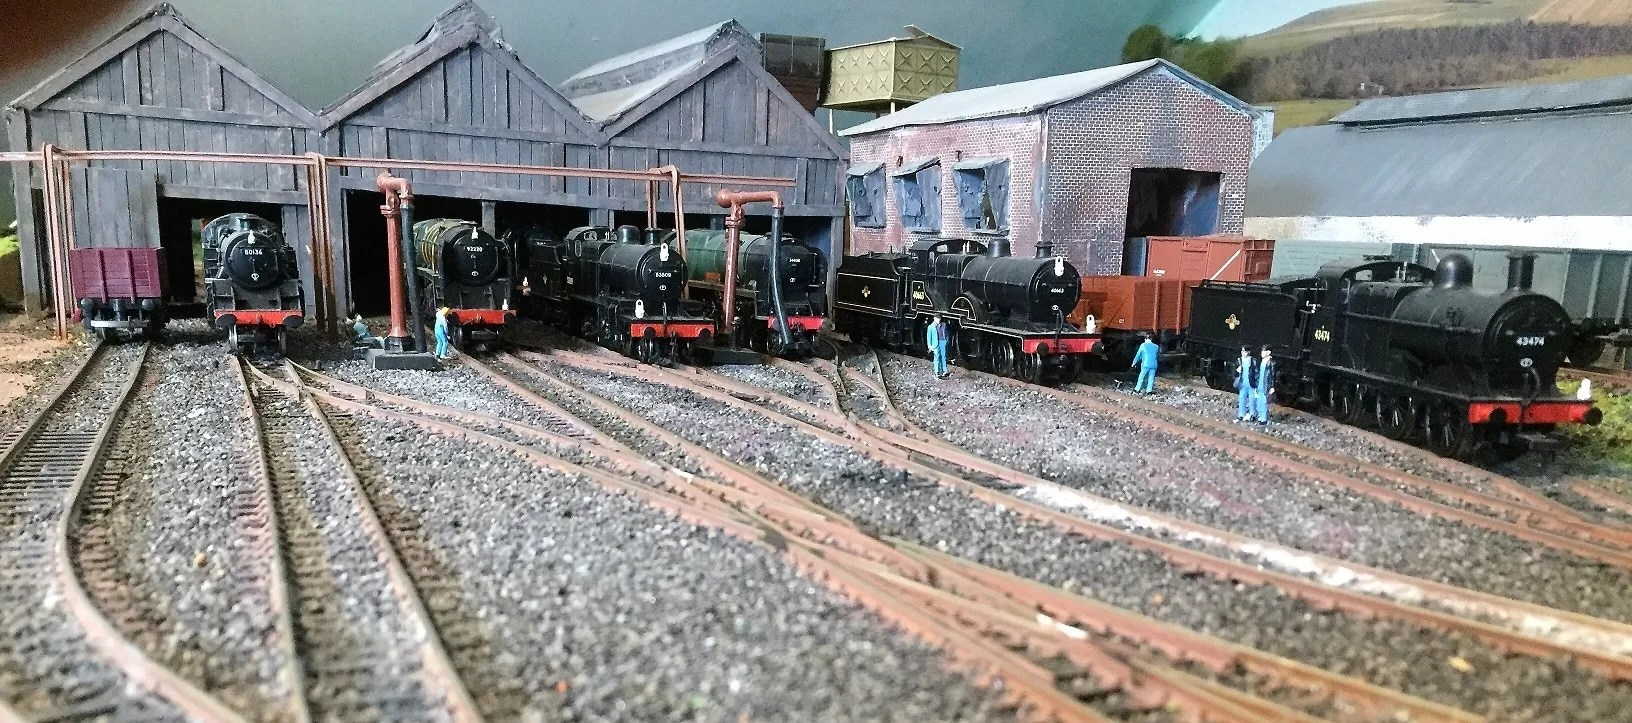 Loco line-up outside model railway shed 00 gauge